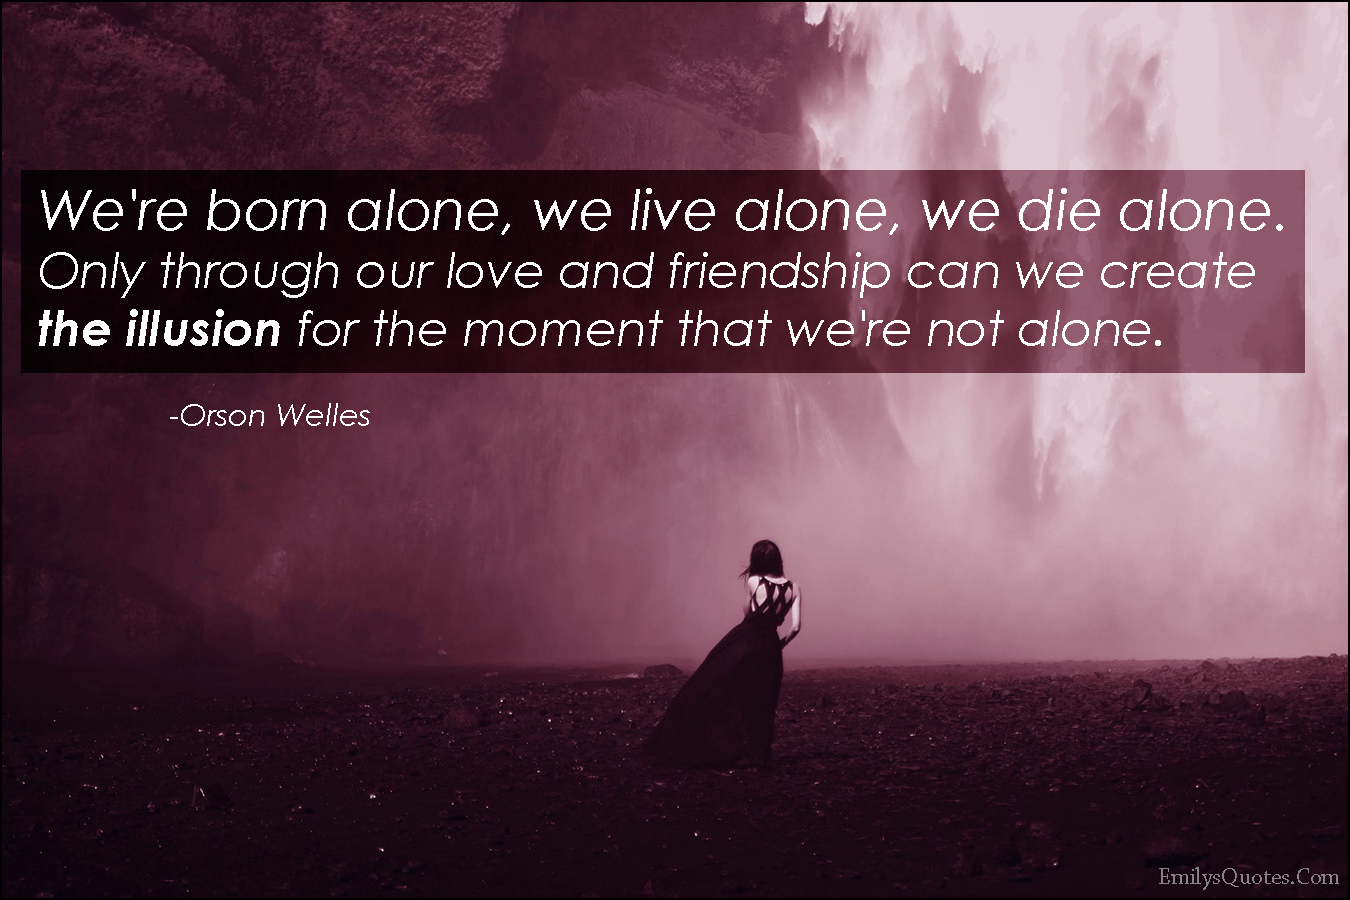 Love And Friendship Quotes We're Born Alone We Live Alone We Die Aloneonly Through